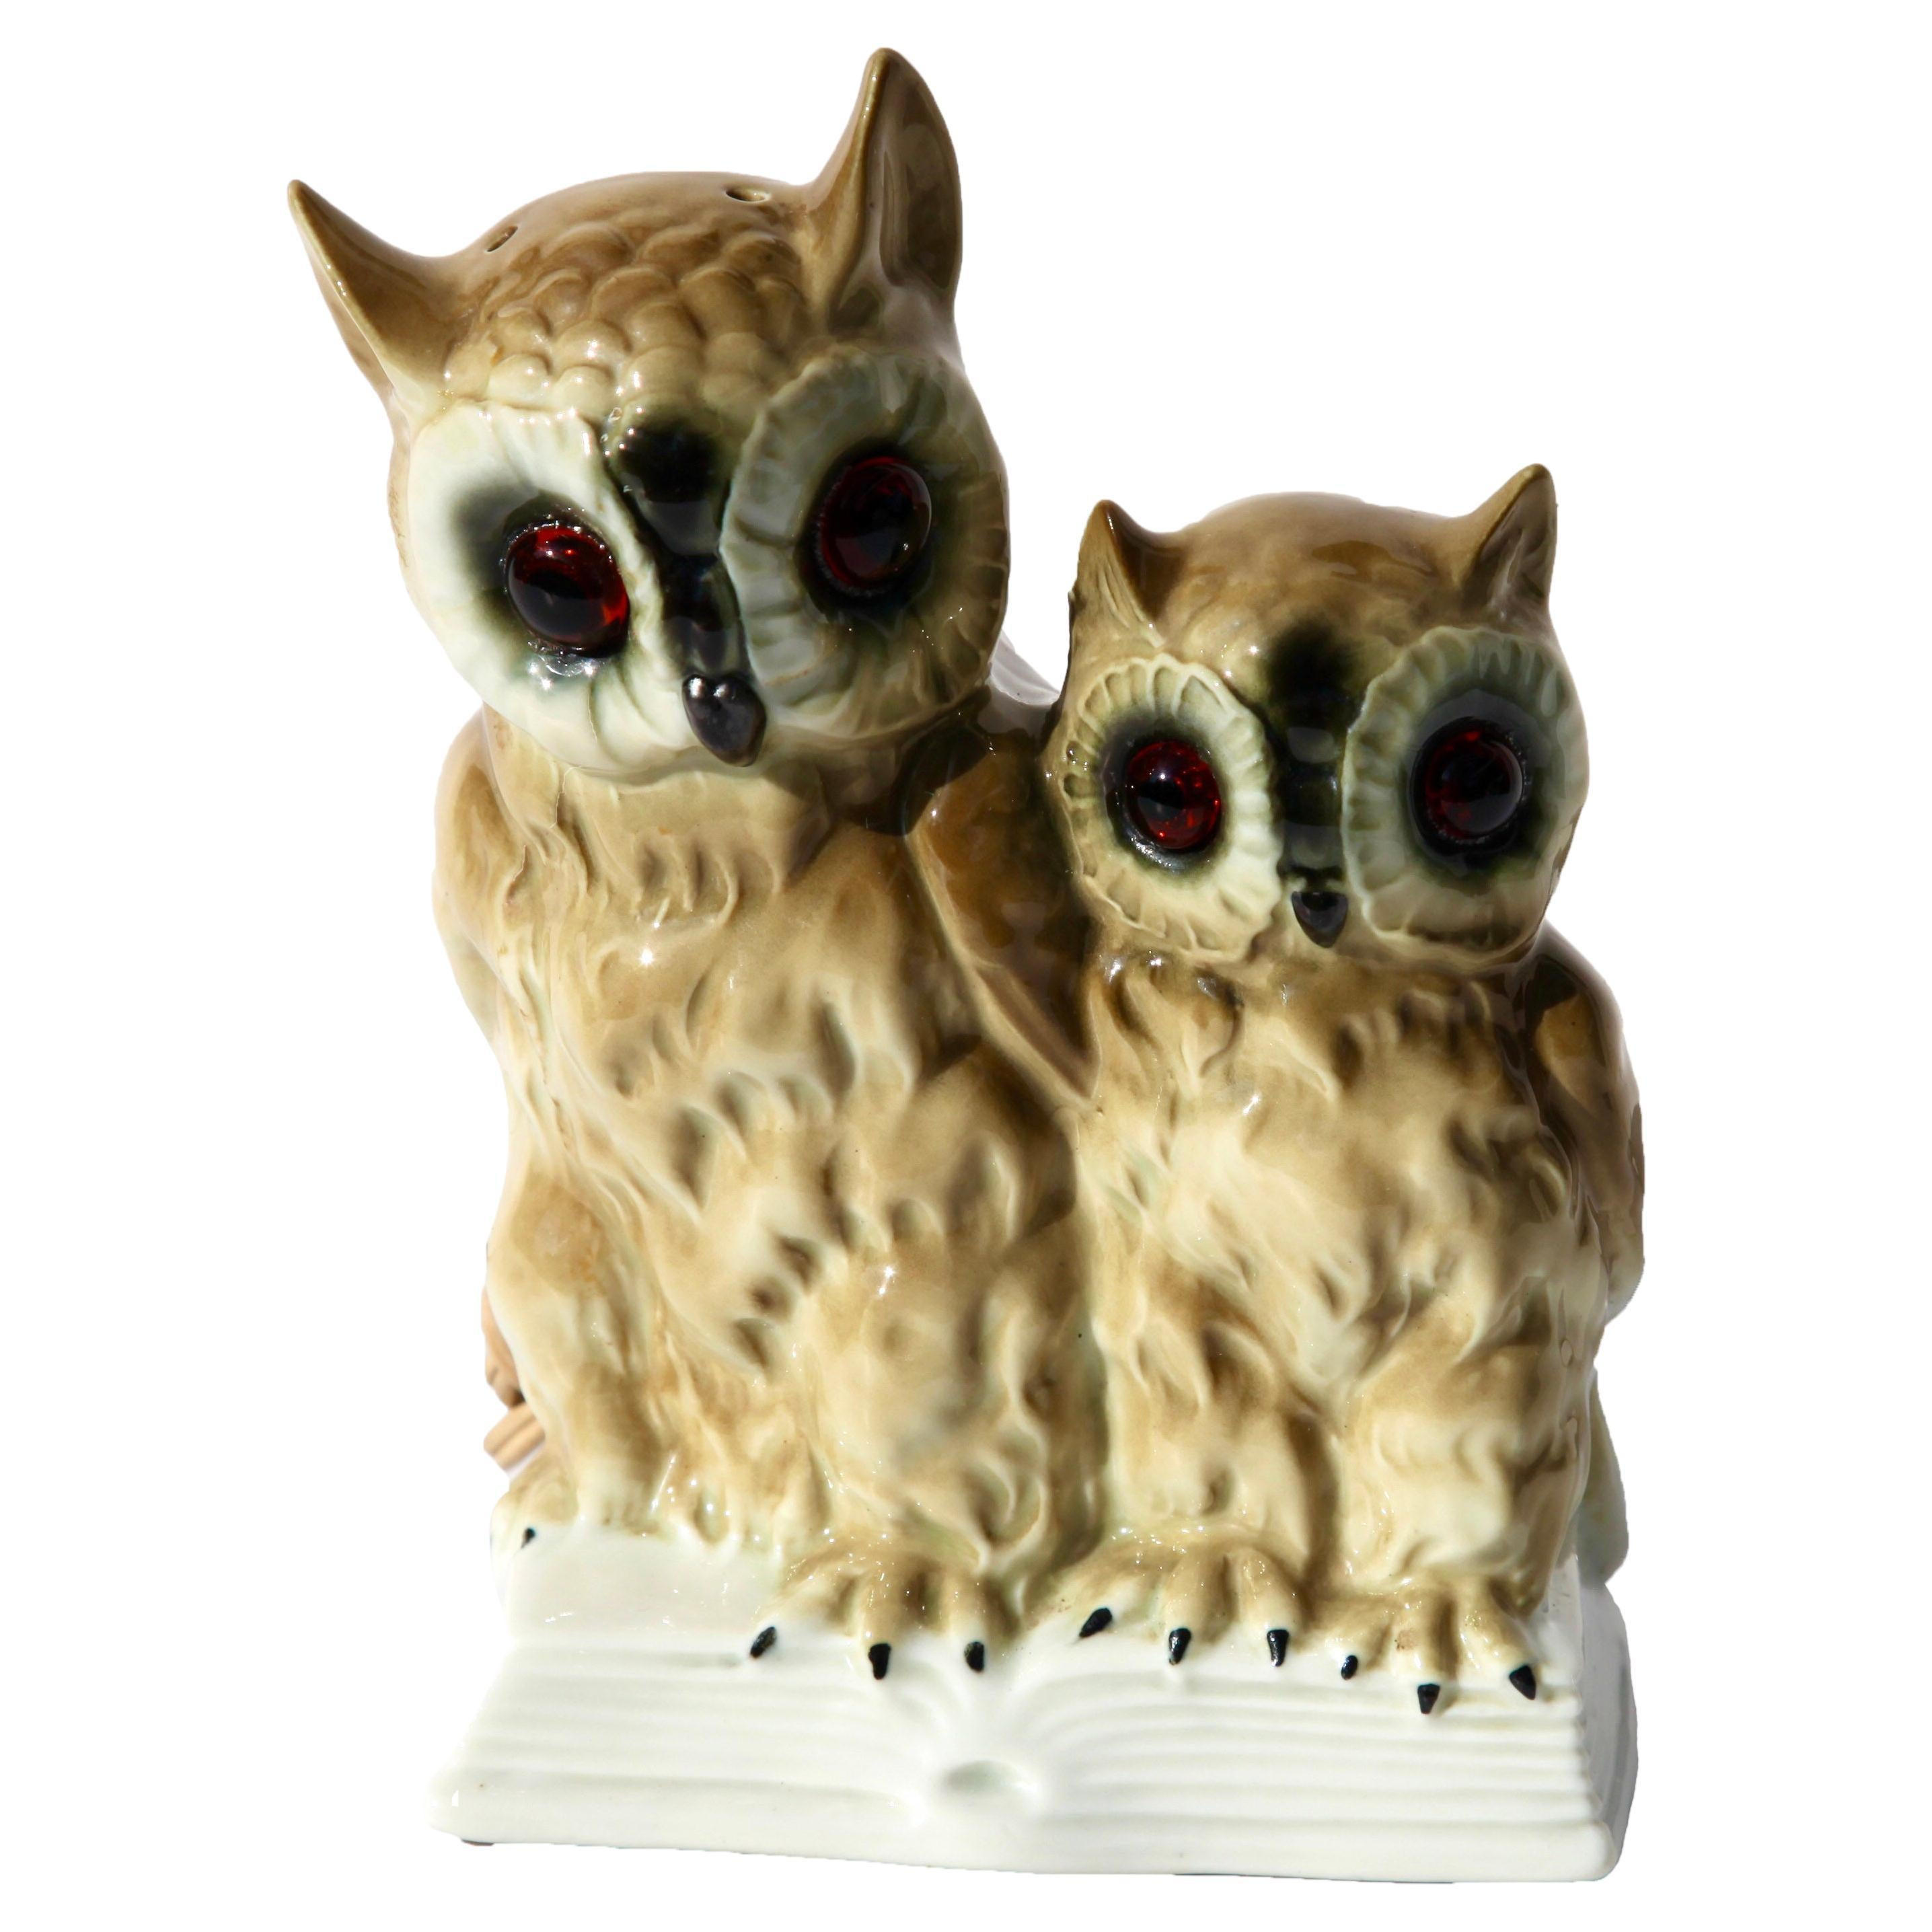 Perfume Lamp Mother Owl and Chick by Carl Scheidig/Gräfenthal, Germany, 1930s